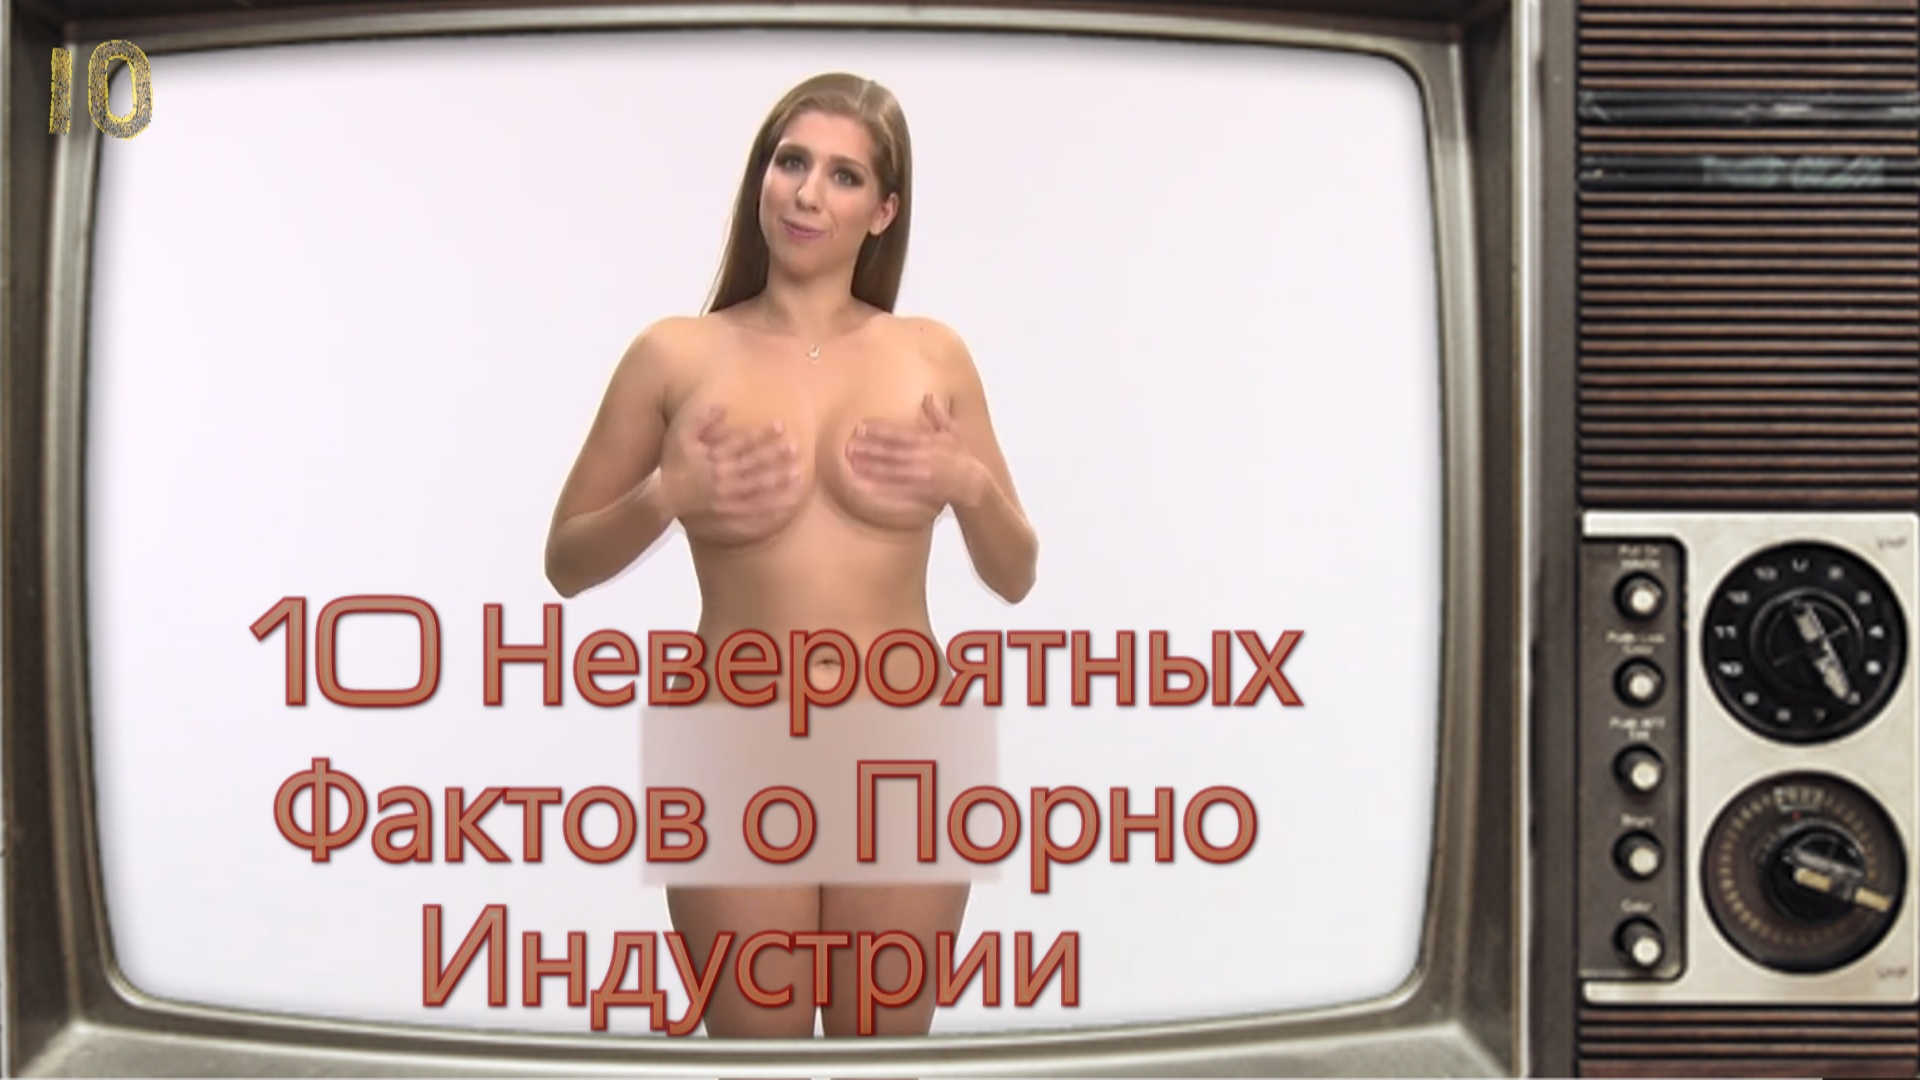 novosti-porno-industrii-v-ukraine-video-krikami